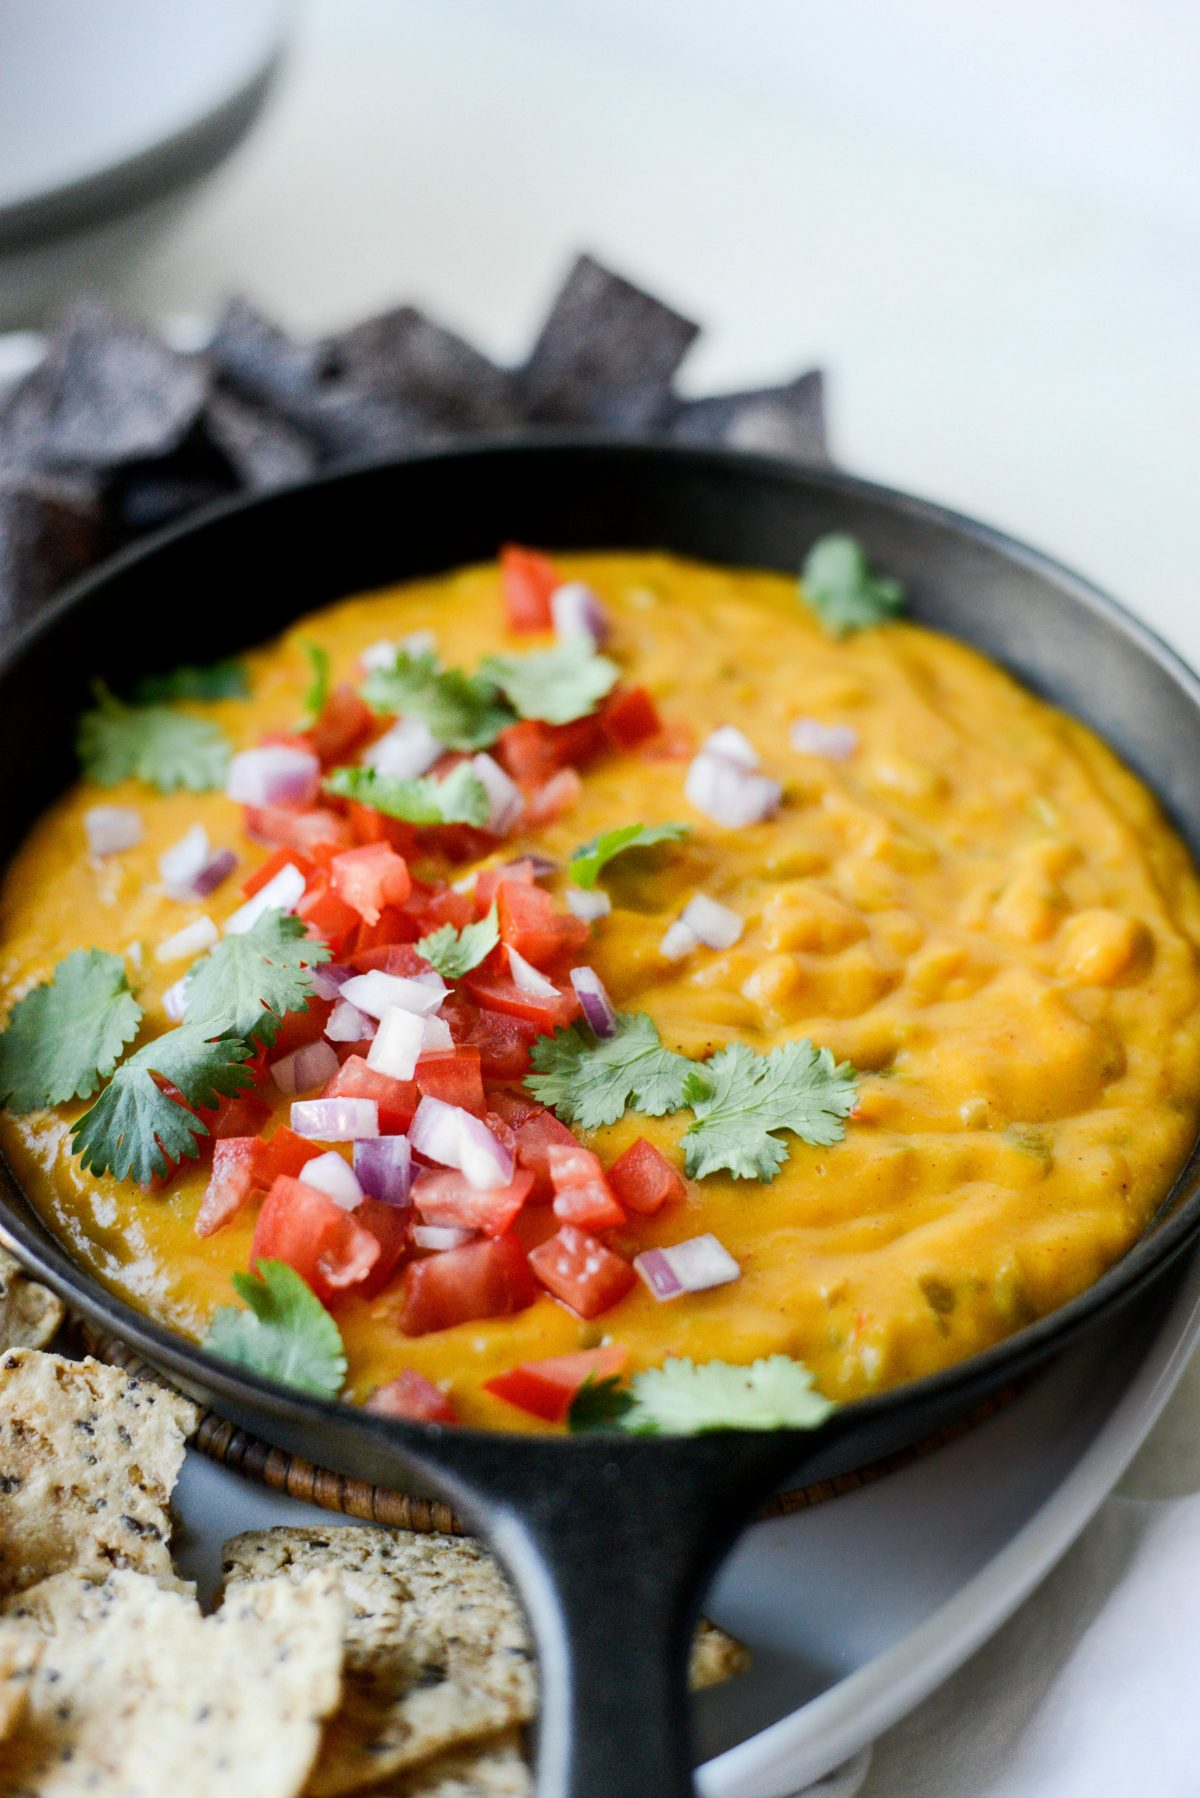 Spicy Squash Queso l SimplyScratch.com